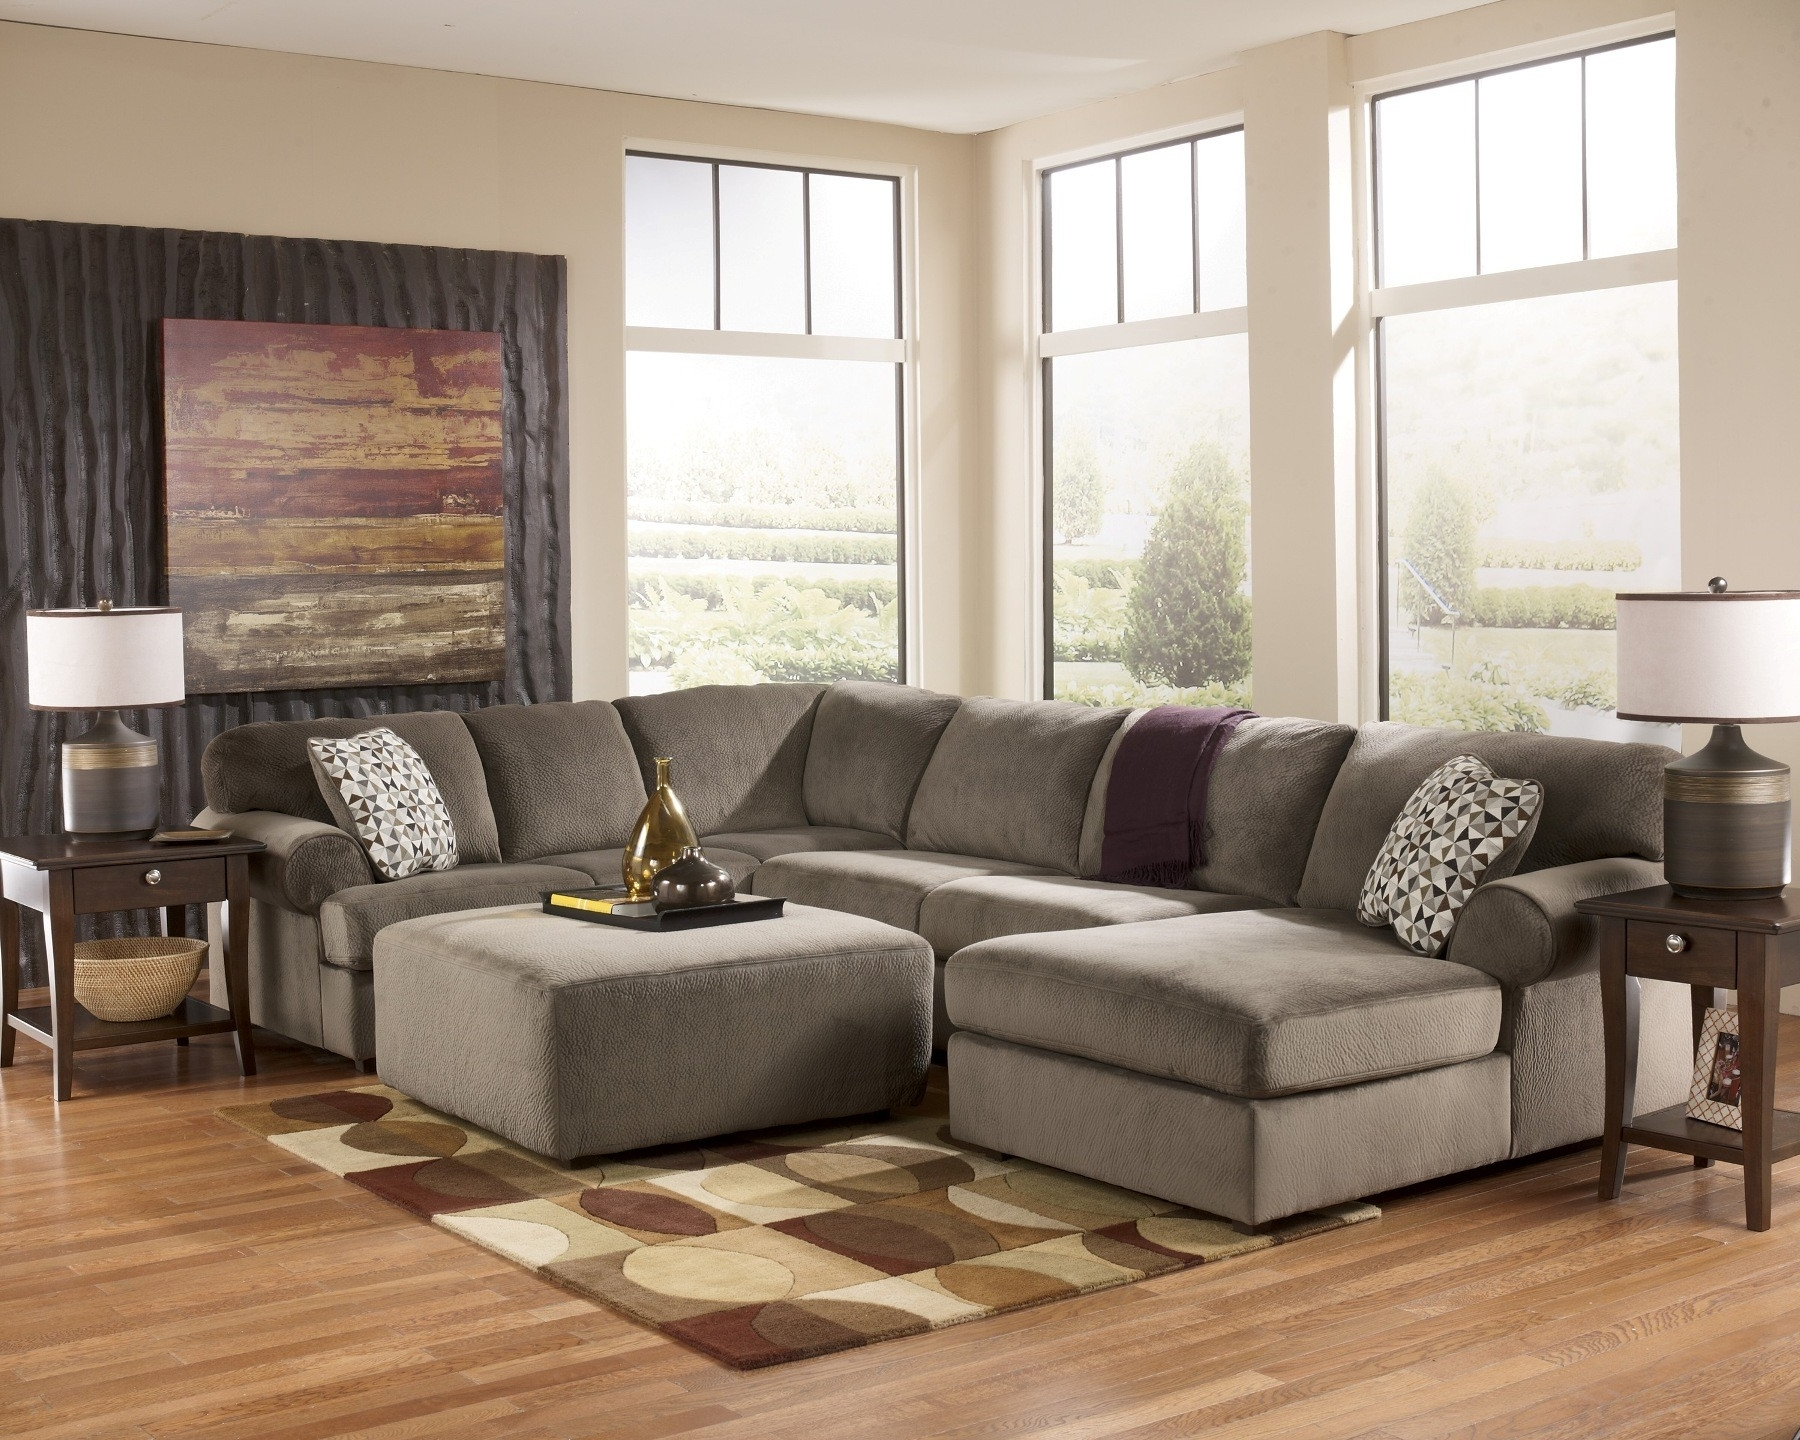 El Paso Texas Sectional Sofas For Recent Asc Furniture – El Paso, Tx (Gallery 3 of 20)